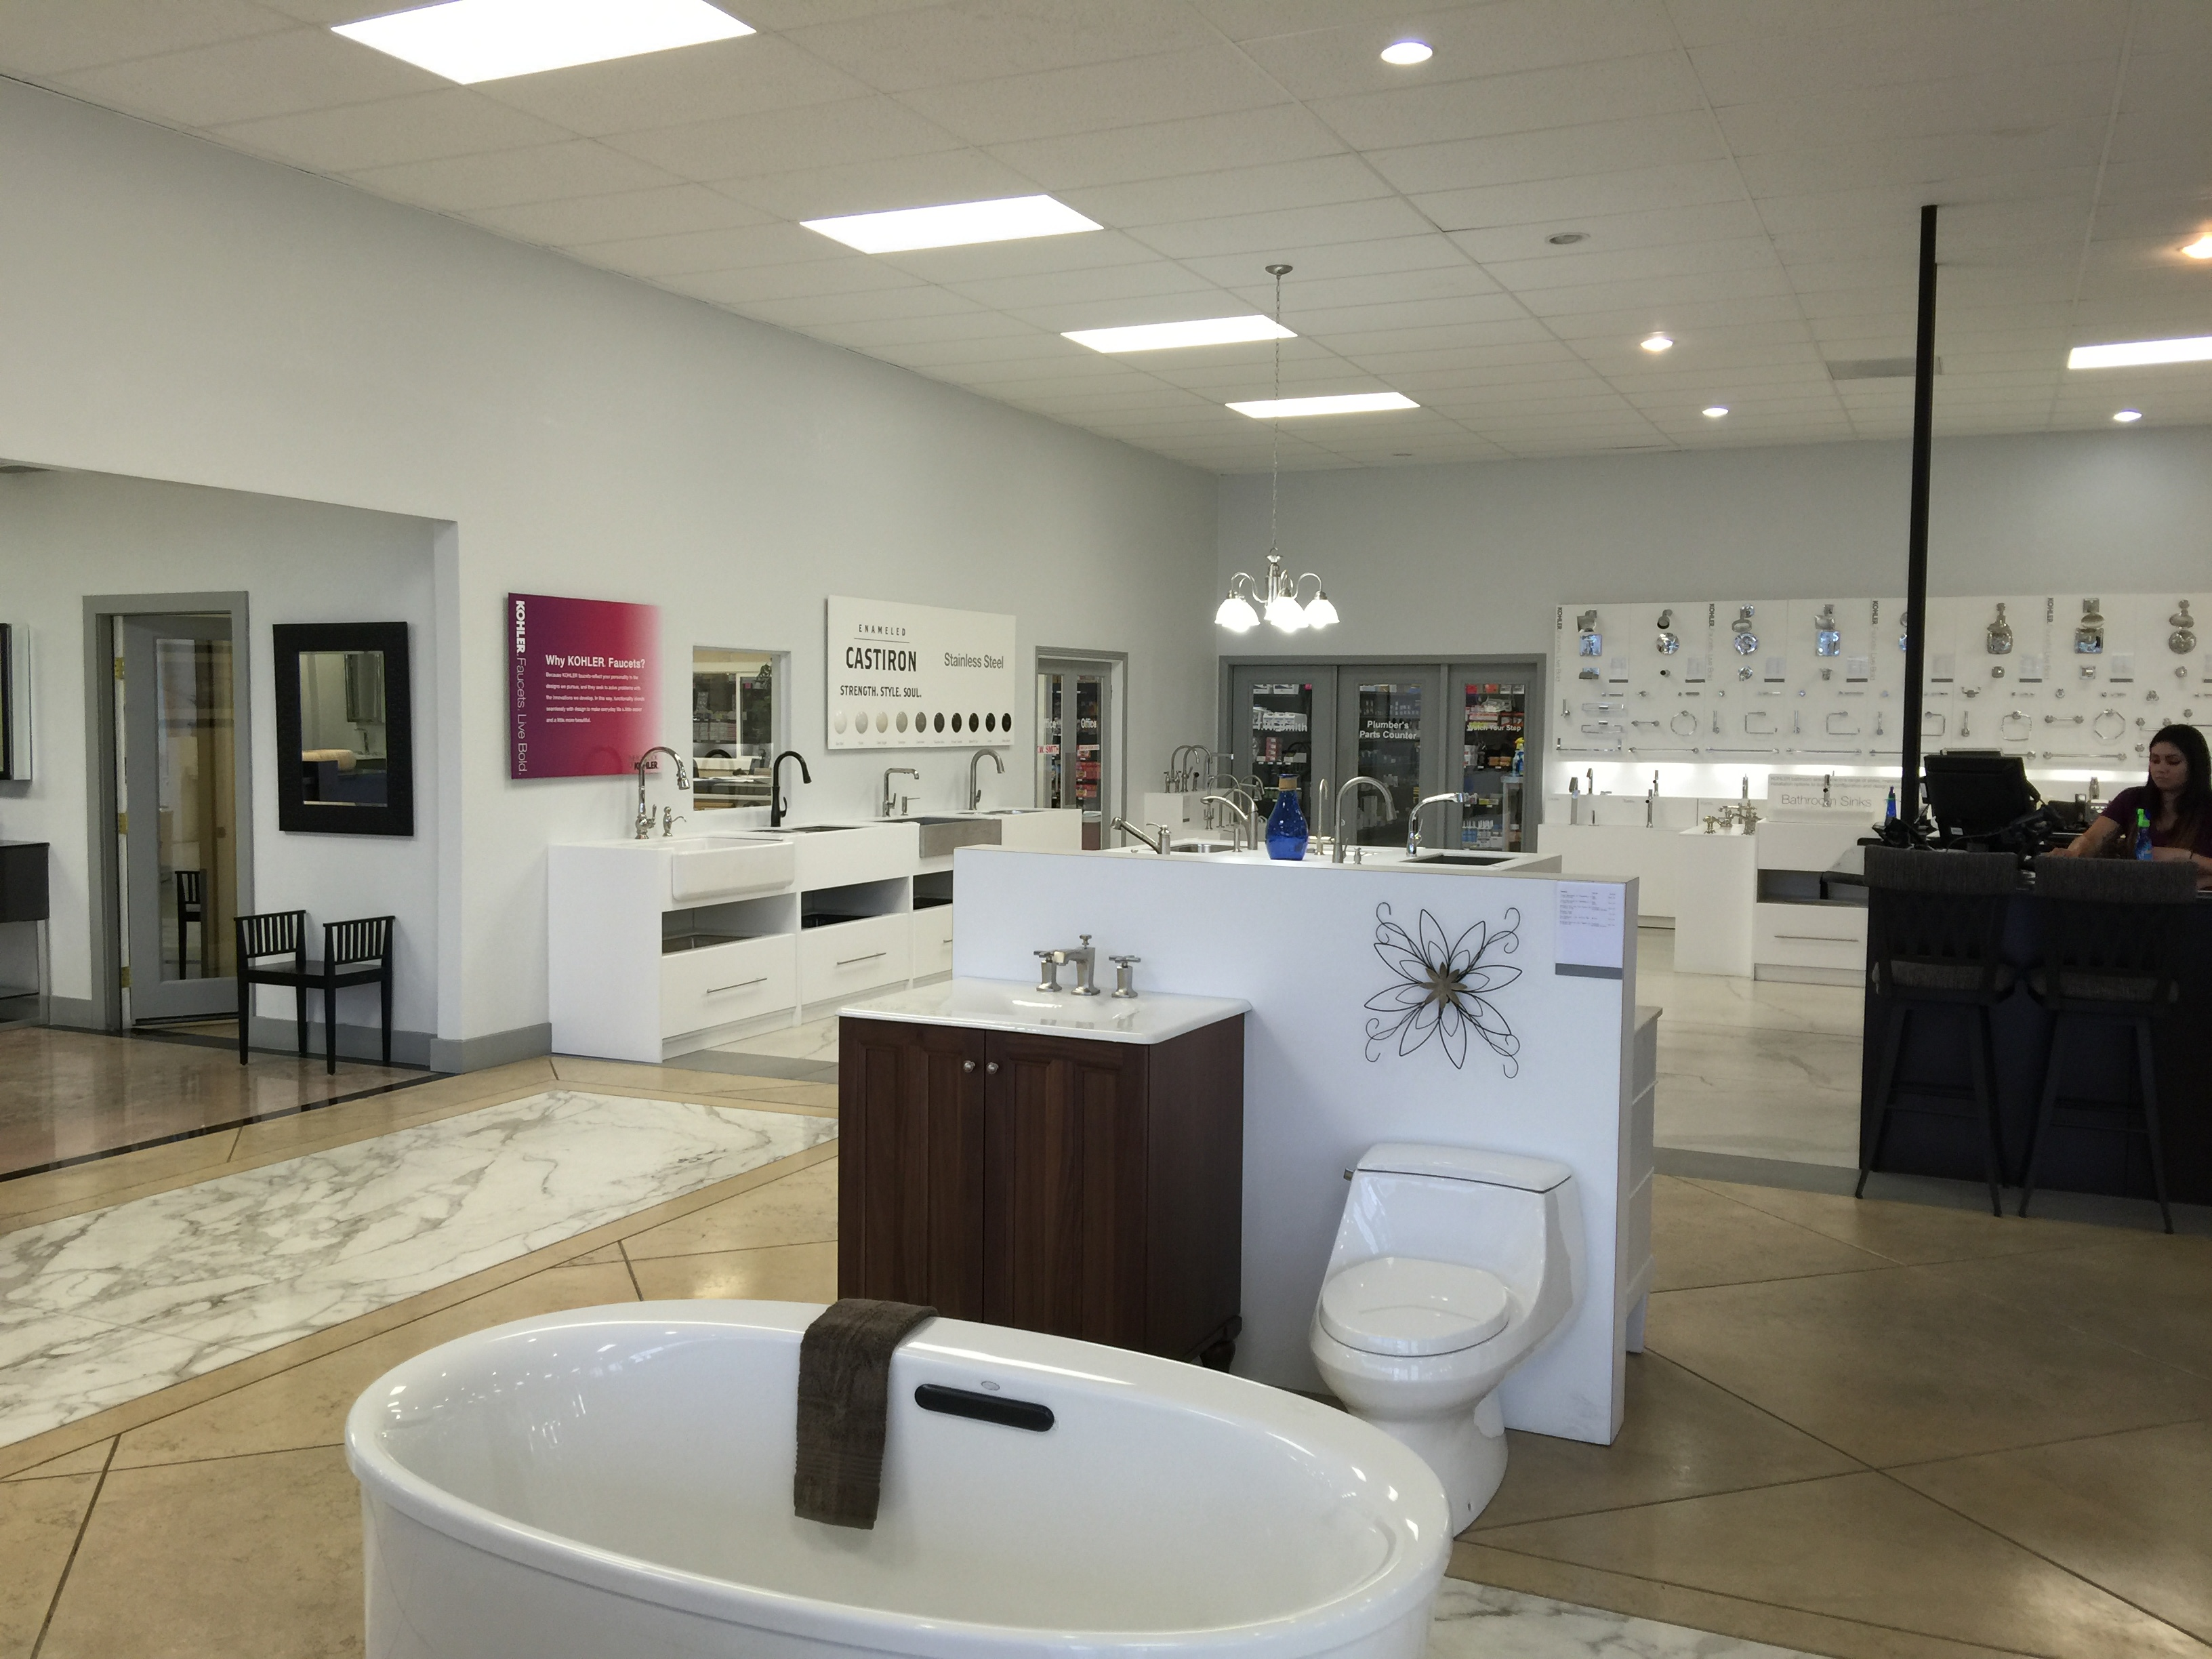 KOHLER Bathroom & Kitchen Products at Standard Plumbing Supply in ...